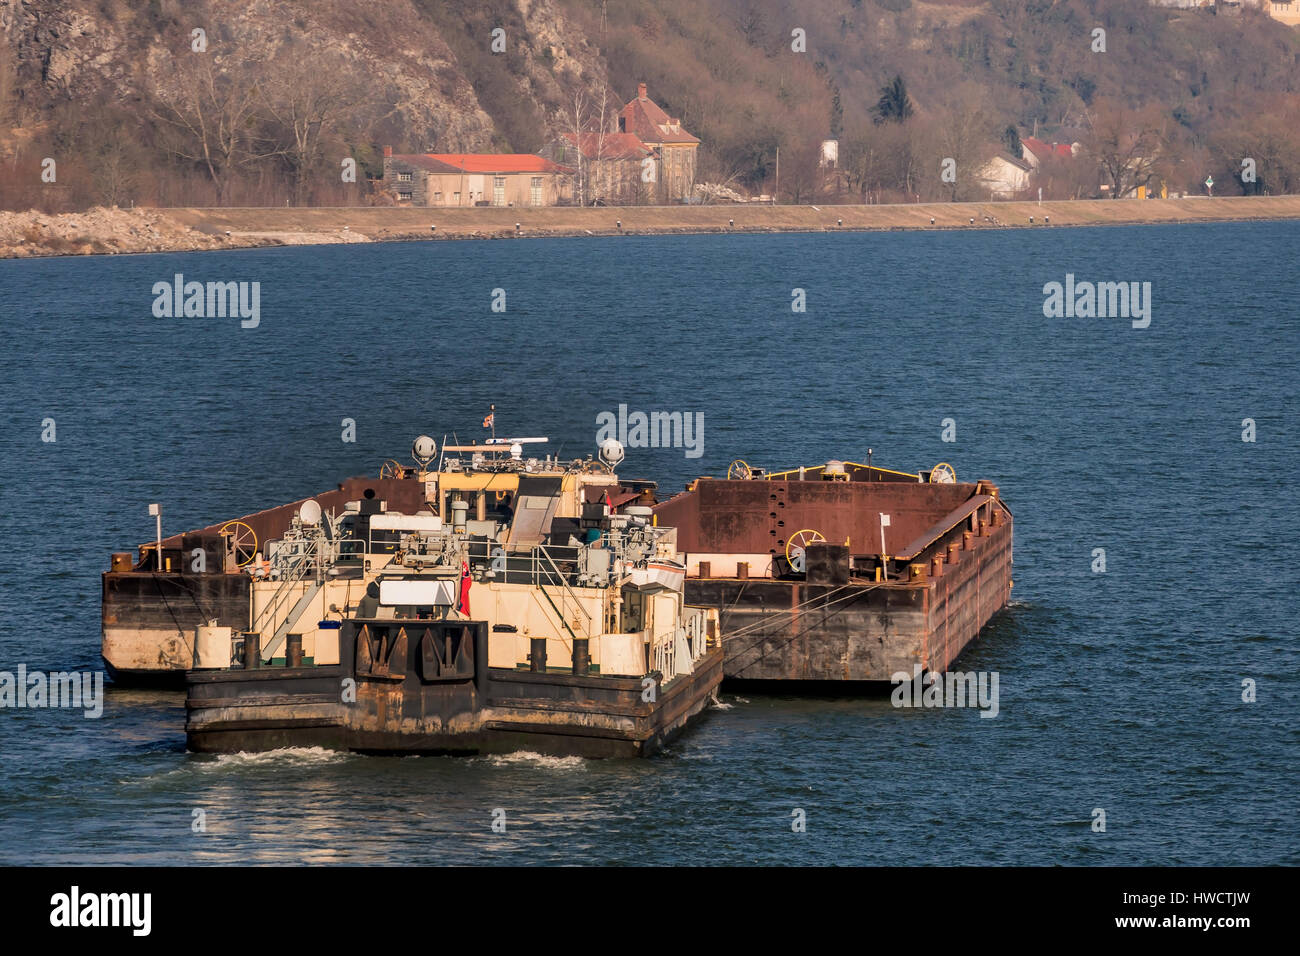 Freighter with bulk freight on the way, symbol for navigation, goods traffic, logistics, export, navigation, Frachter Stock Photo